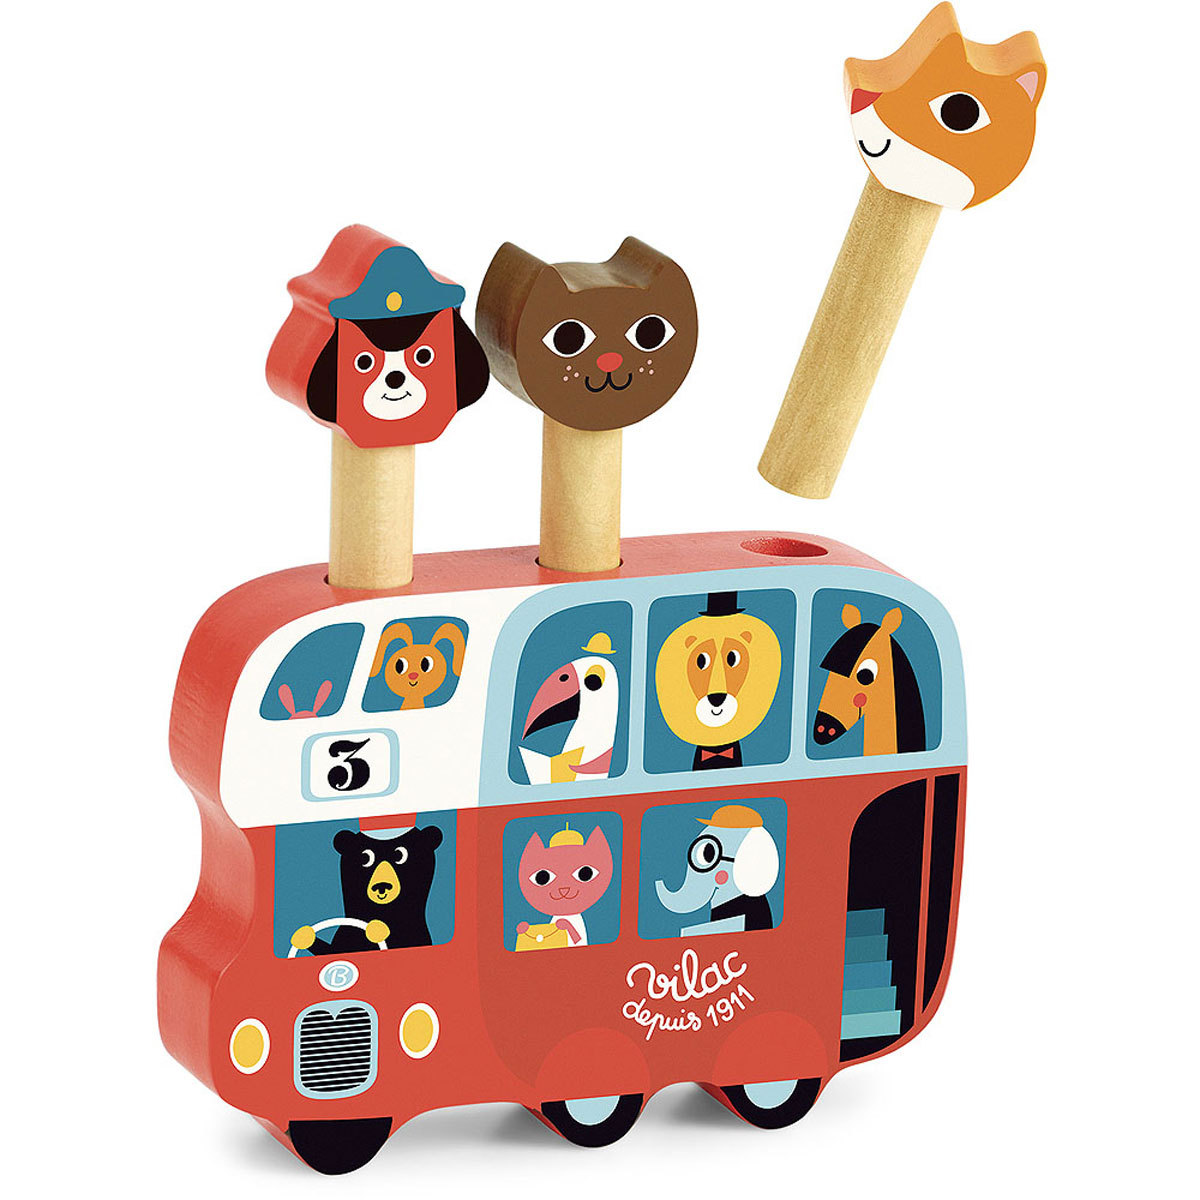 Mes premiers jouets Pop-Up Autobus par Ingela P. Arrhenius Pop-Up Autobus par Ingela P. Arrhenius